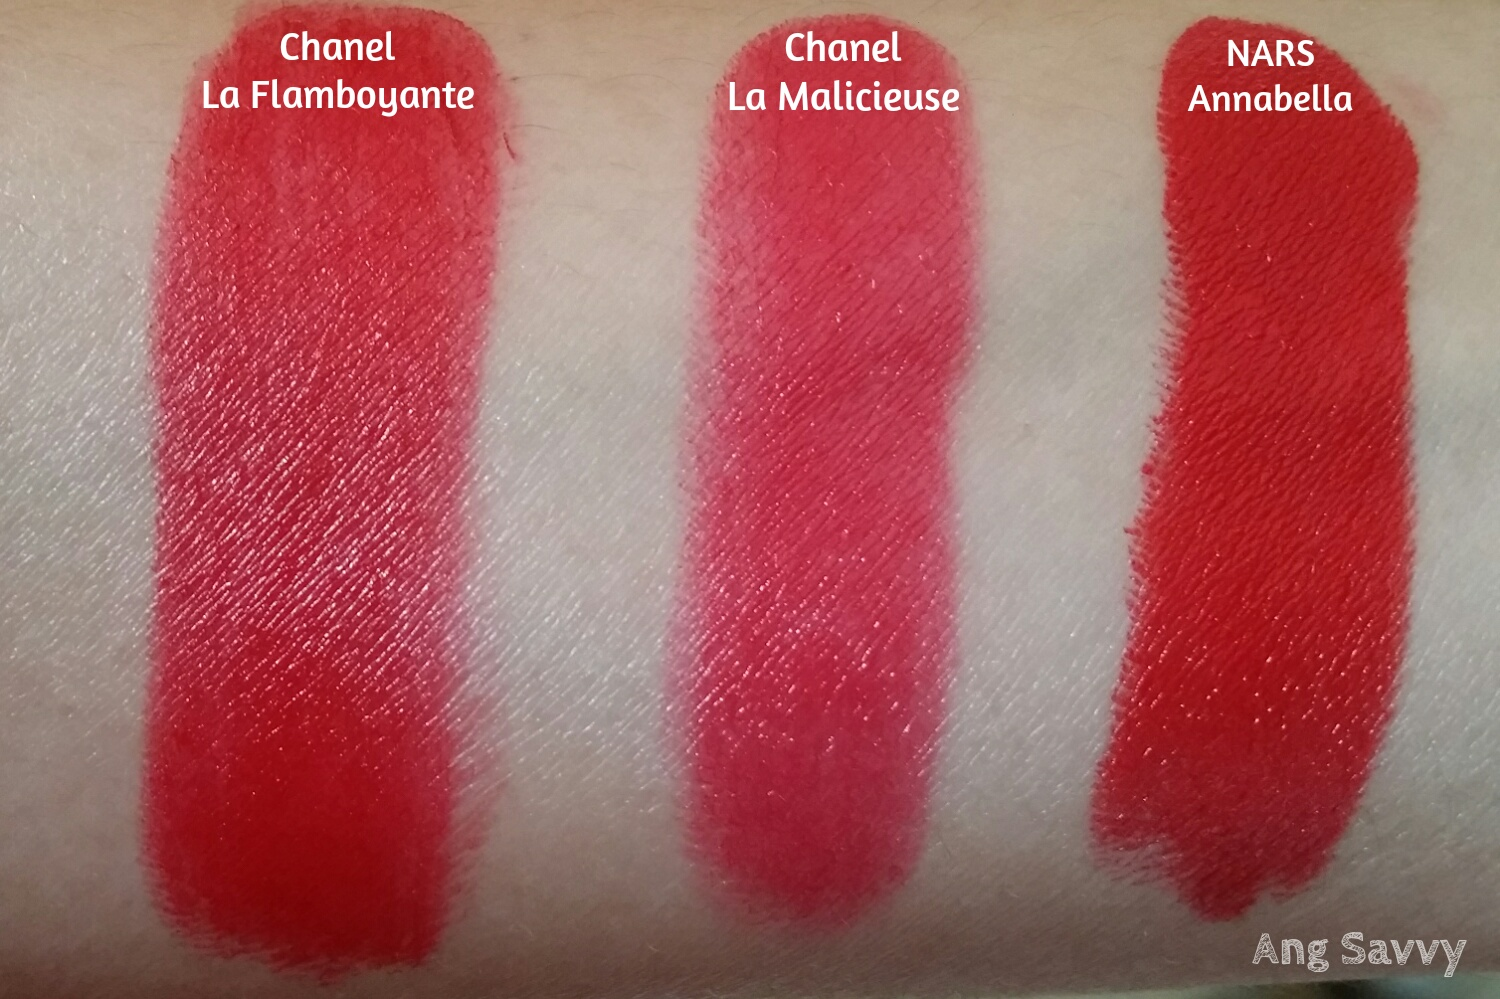 Chanel Rouge Allure Velvet 337 La Flamboyante Swatch